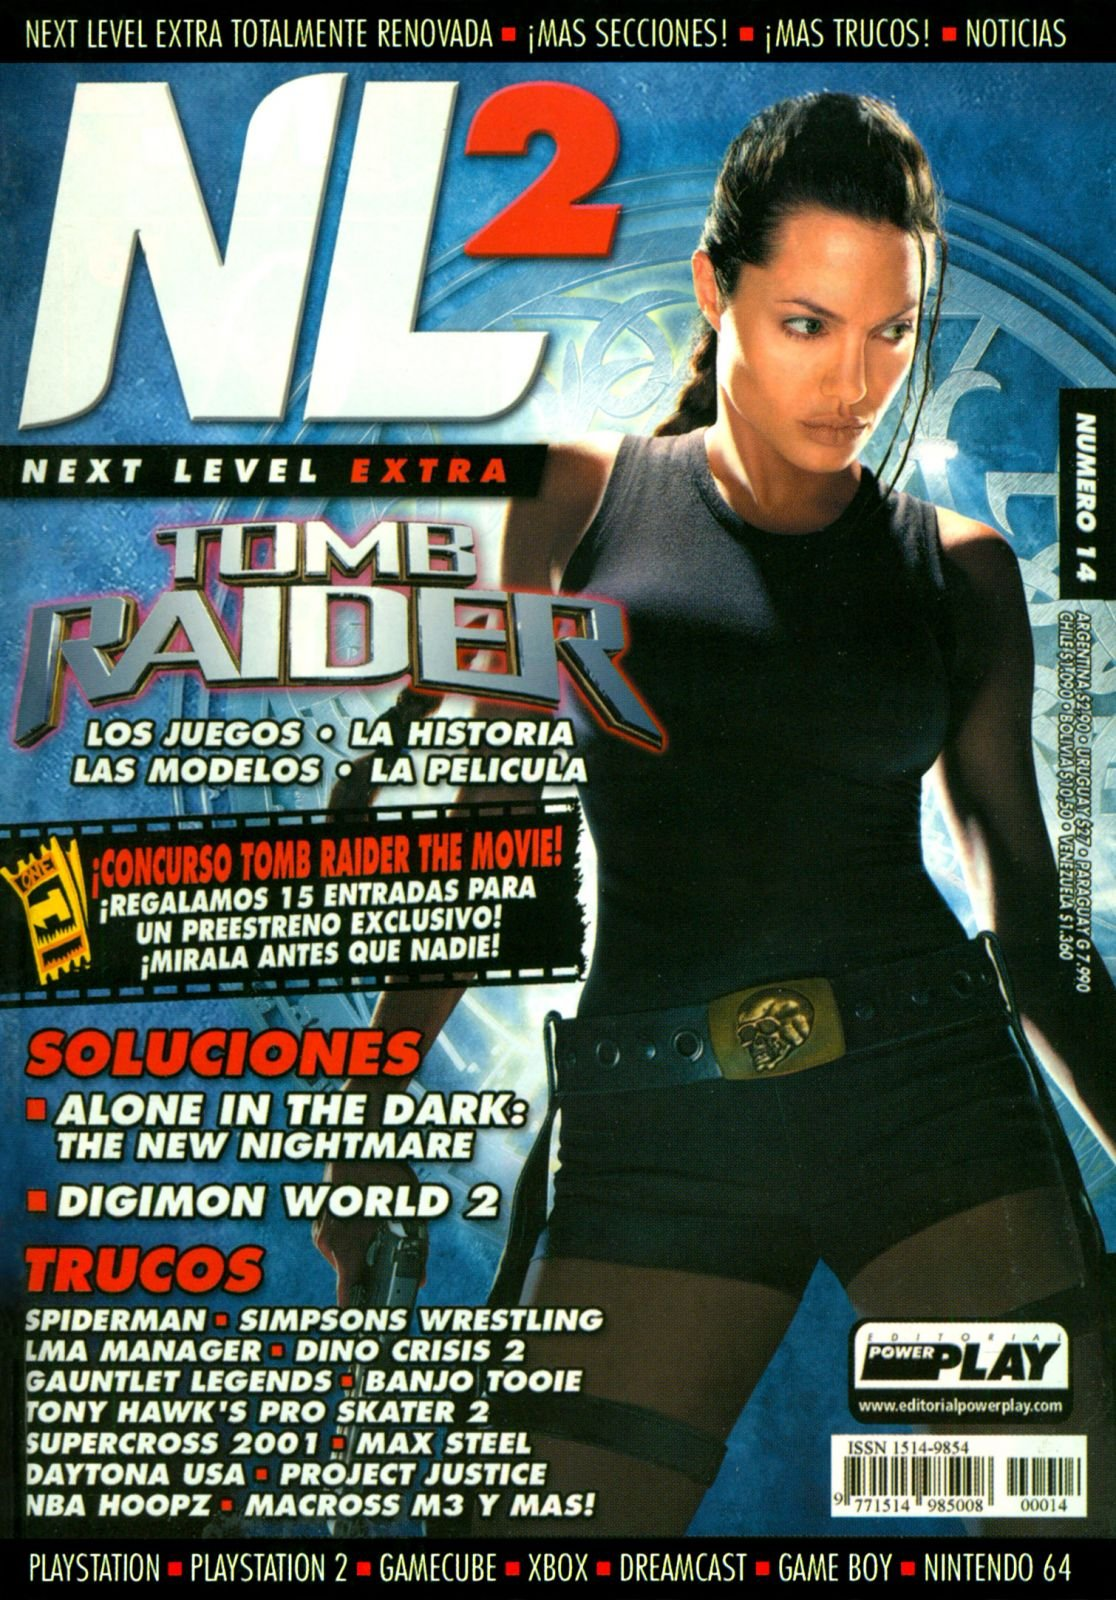 Next Level Extra 14 June 2001